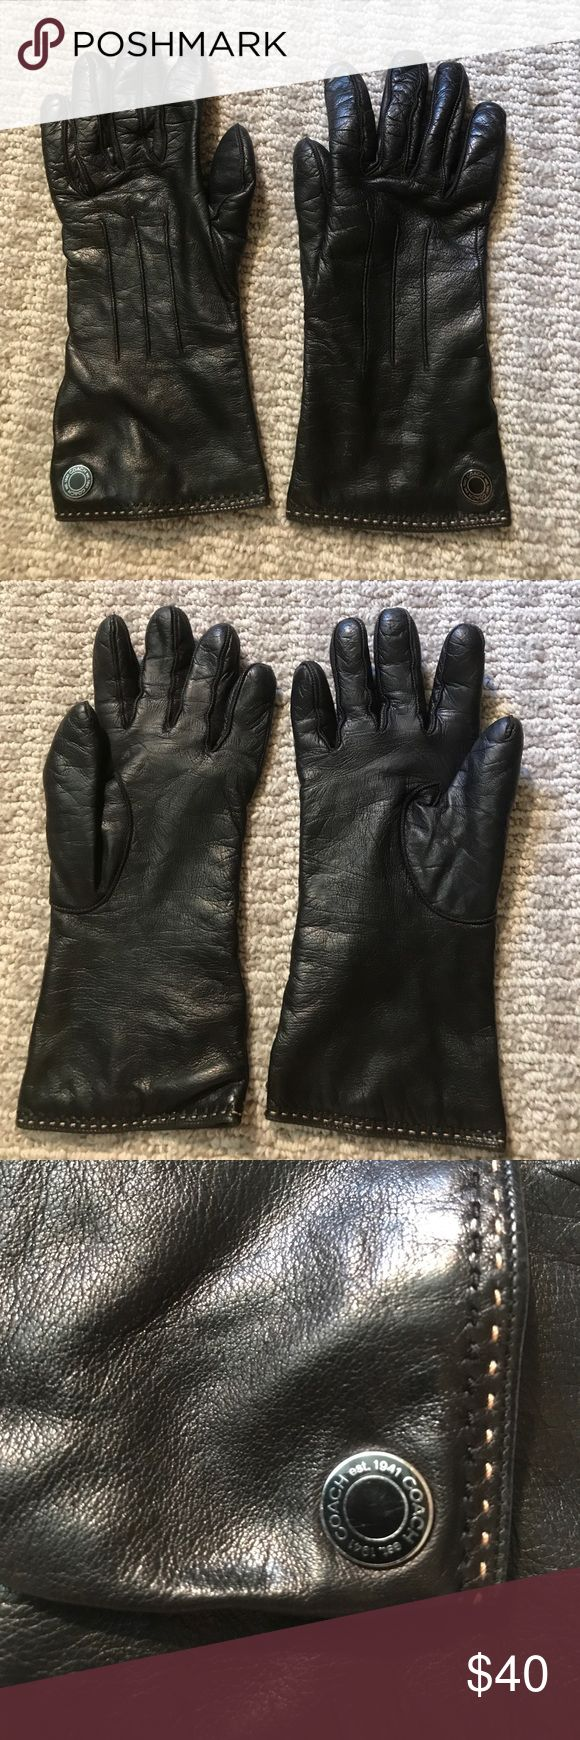 John lewis ladies black leather gloves - Coach Leather Gloves